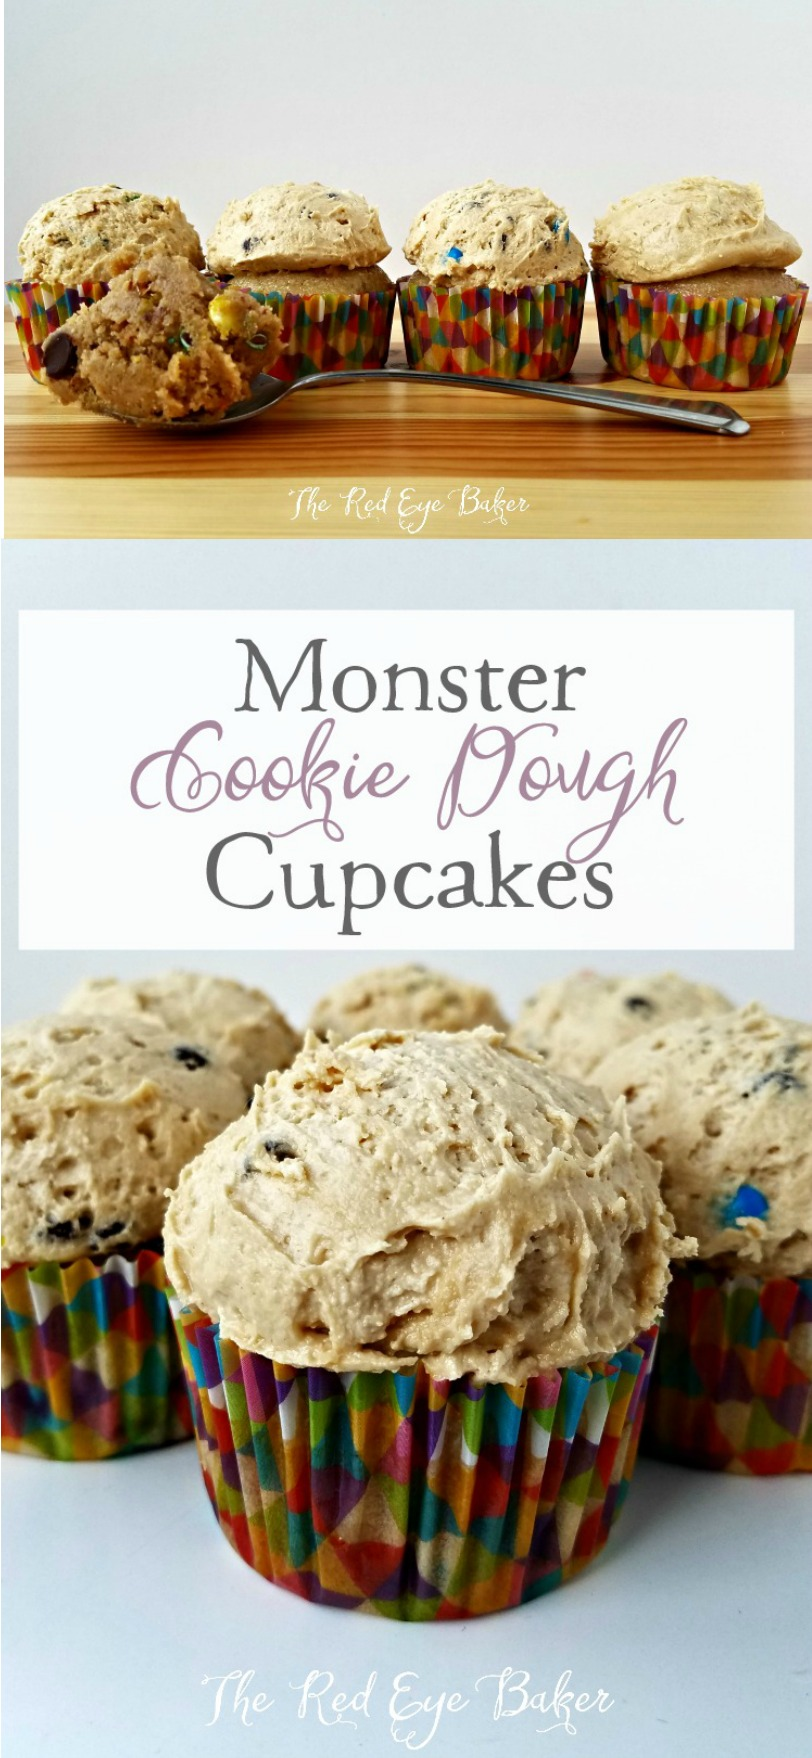 Monster Cookie Dough Cupcakes | Bring out the kid in you with these delicious Monster Cookie Dough Cupcakes, filled with edible cookie dough, M&M's, chocolate chips, and PB frosting!